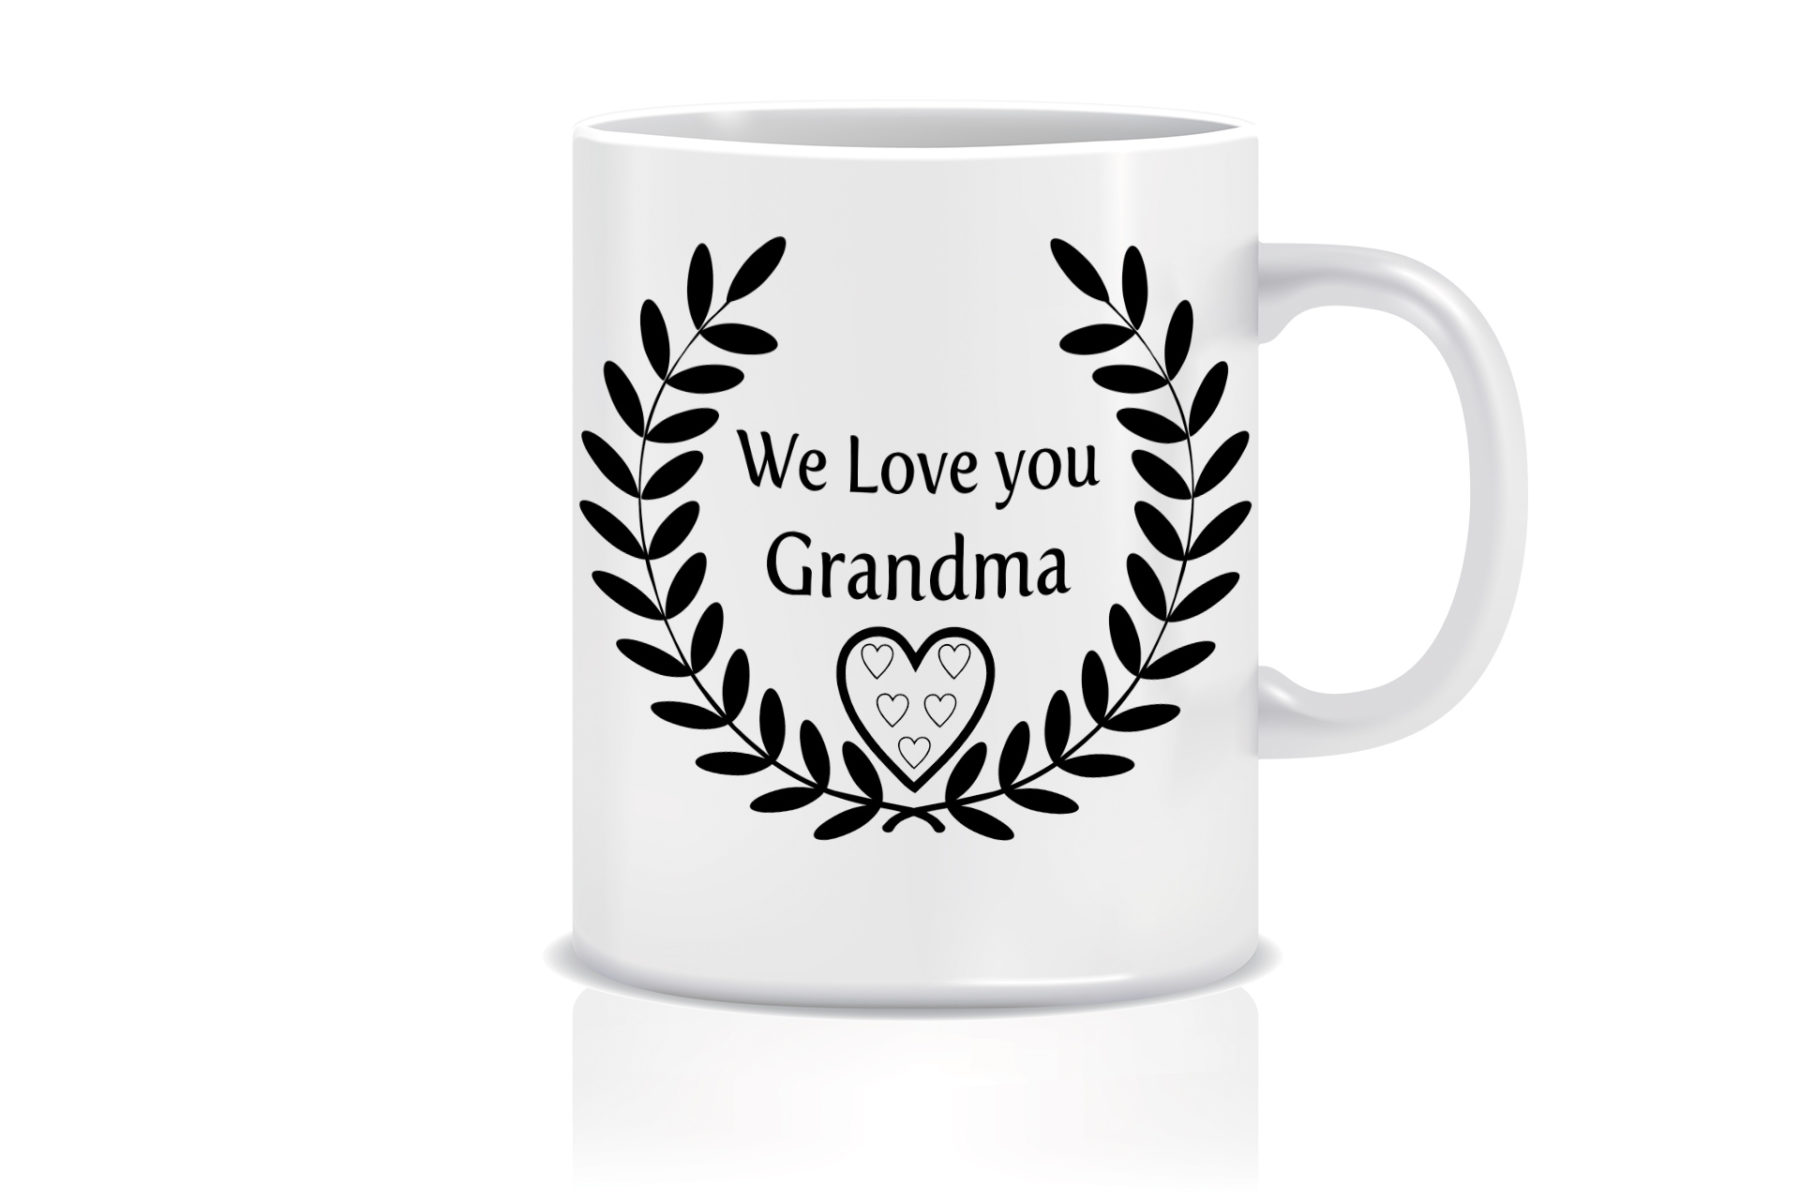 12 Great Christmas gifts for Grandma  sc 1 st  Curious Roy & 12 Great Christmas gifts Grandma